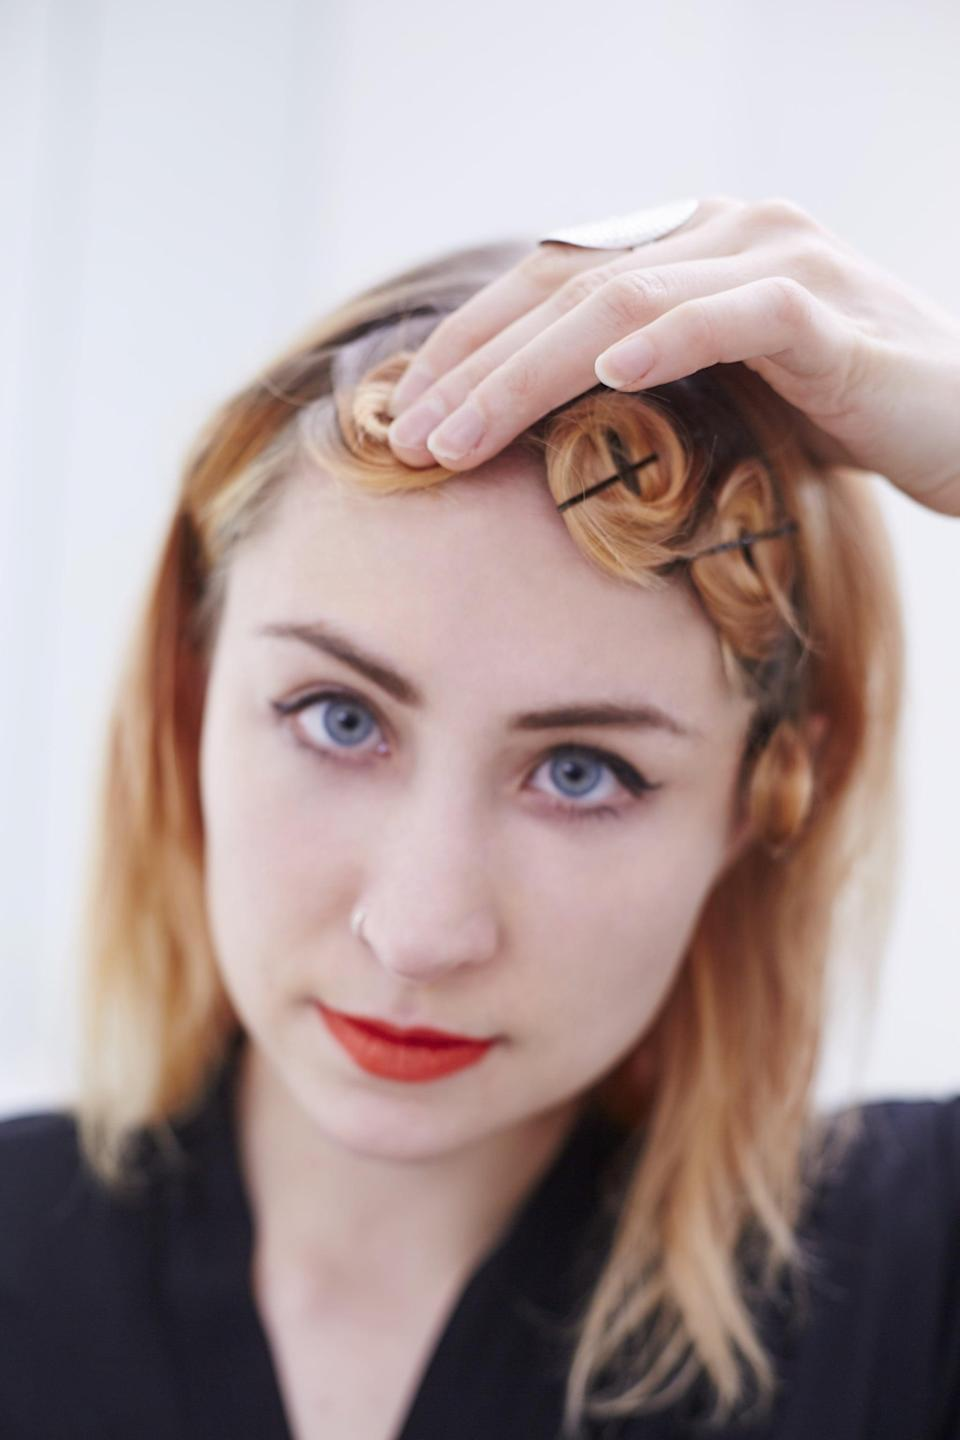 <p>Working one section at a time, roll the hair up from end to root. Once you have a pinwheel formed, secure it with a bobby pin or two.</p>